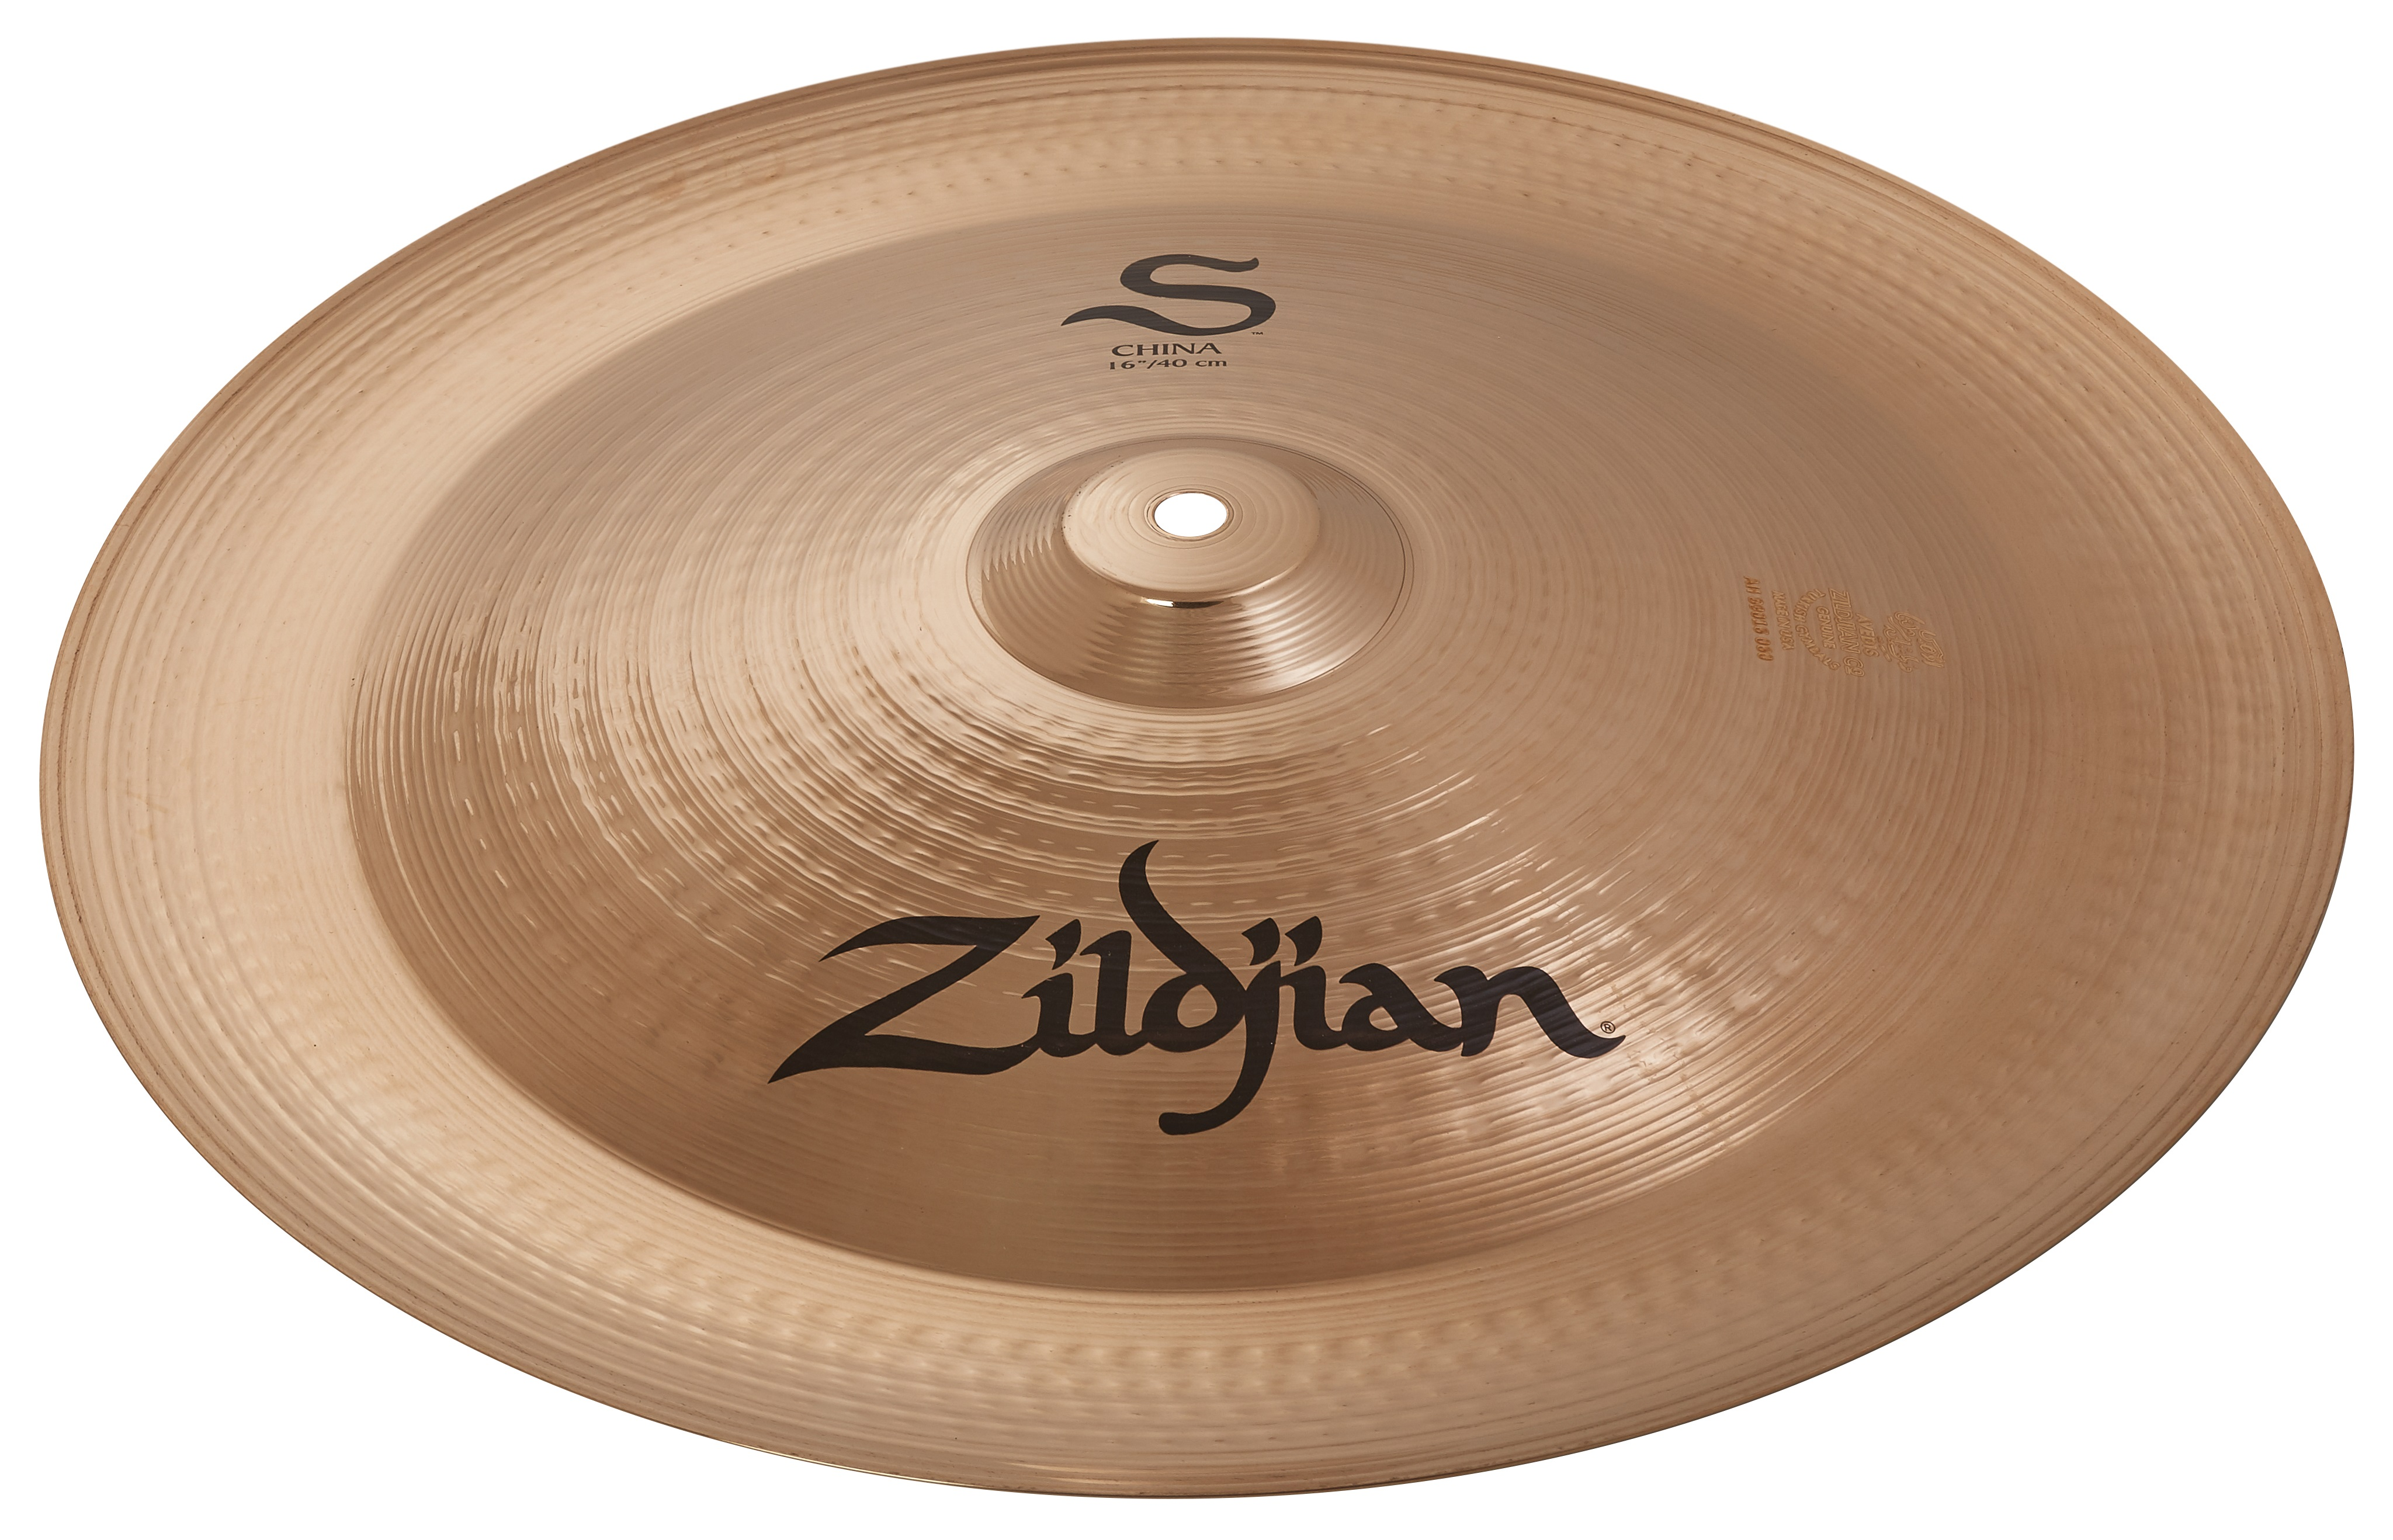 "Zildjian 16"" S Series China"